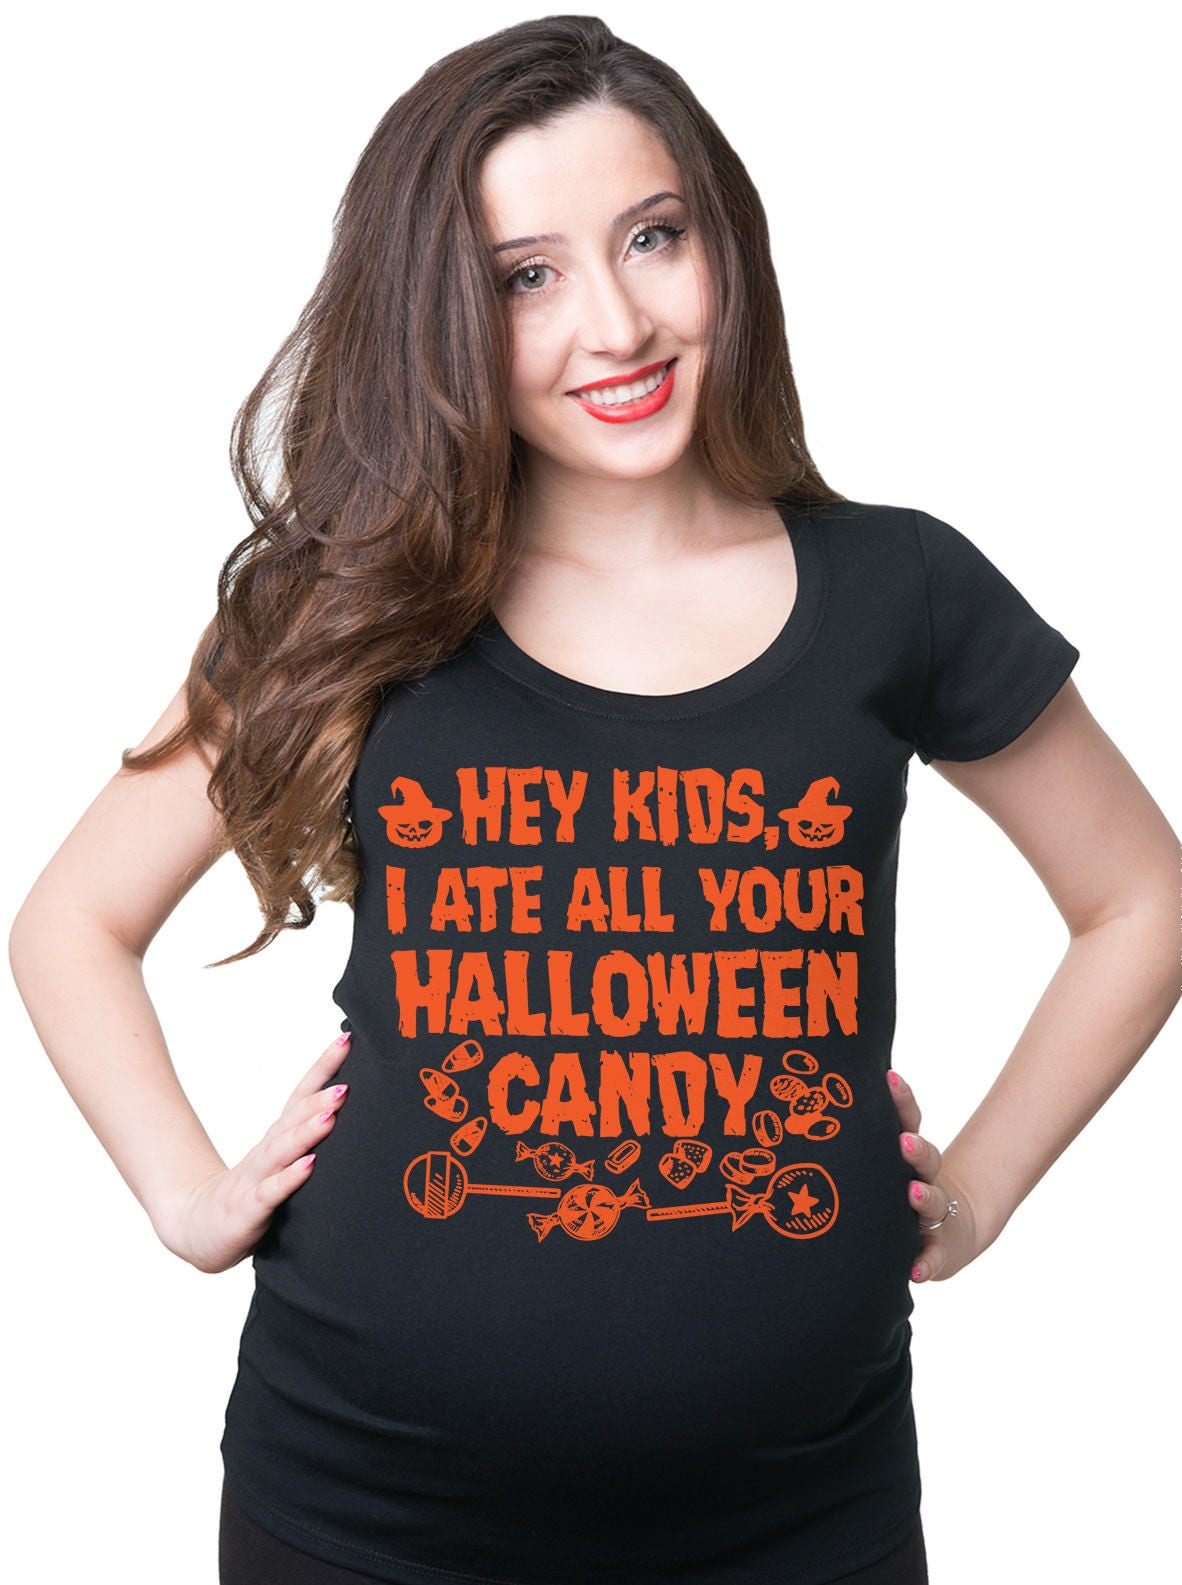 halloween funny pregnancy t-shirt maternity halloween costume | etsy